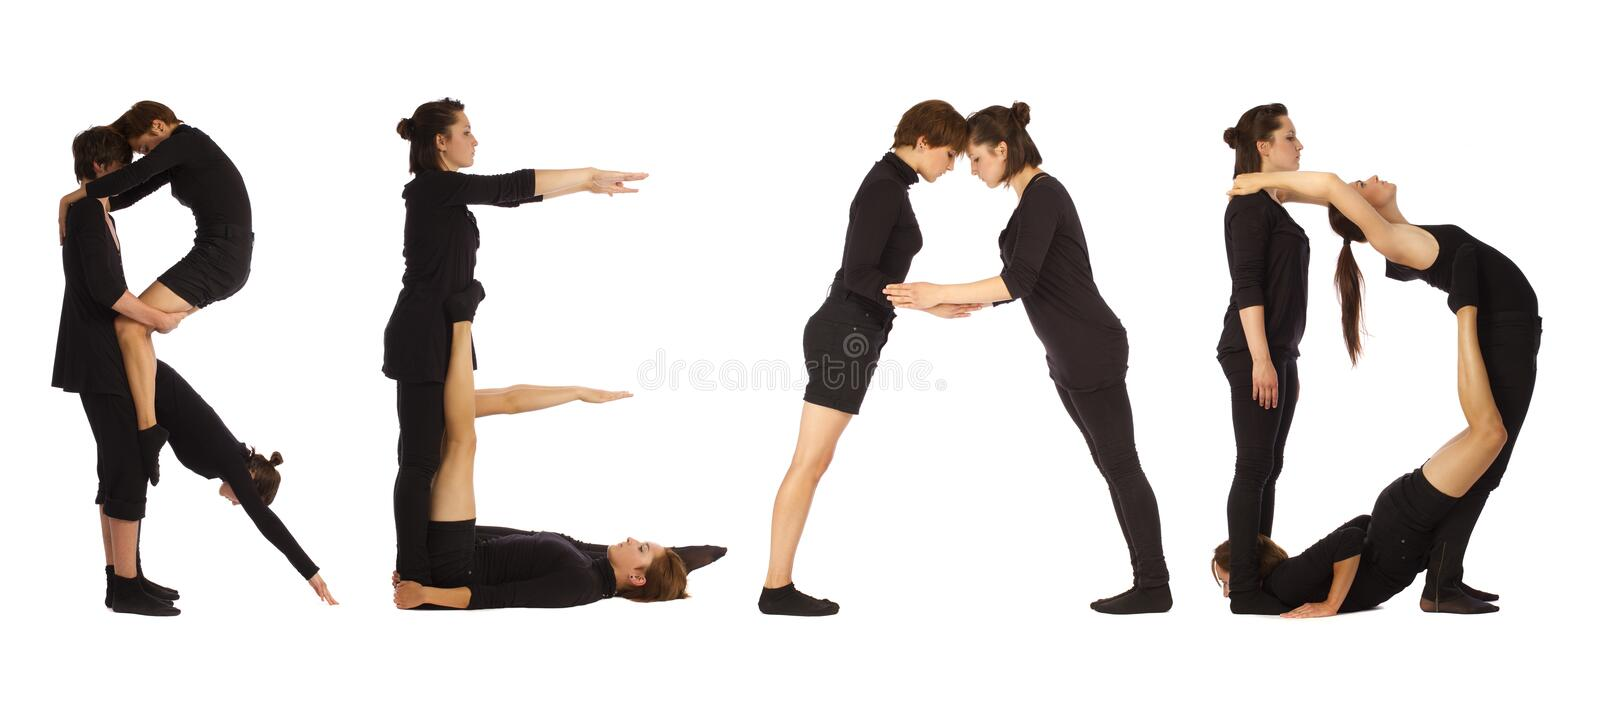 Black dressed people forming READ word. Over white background stock image